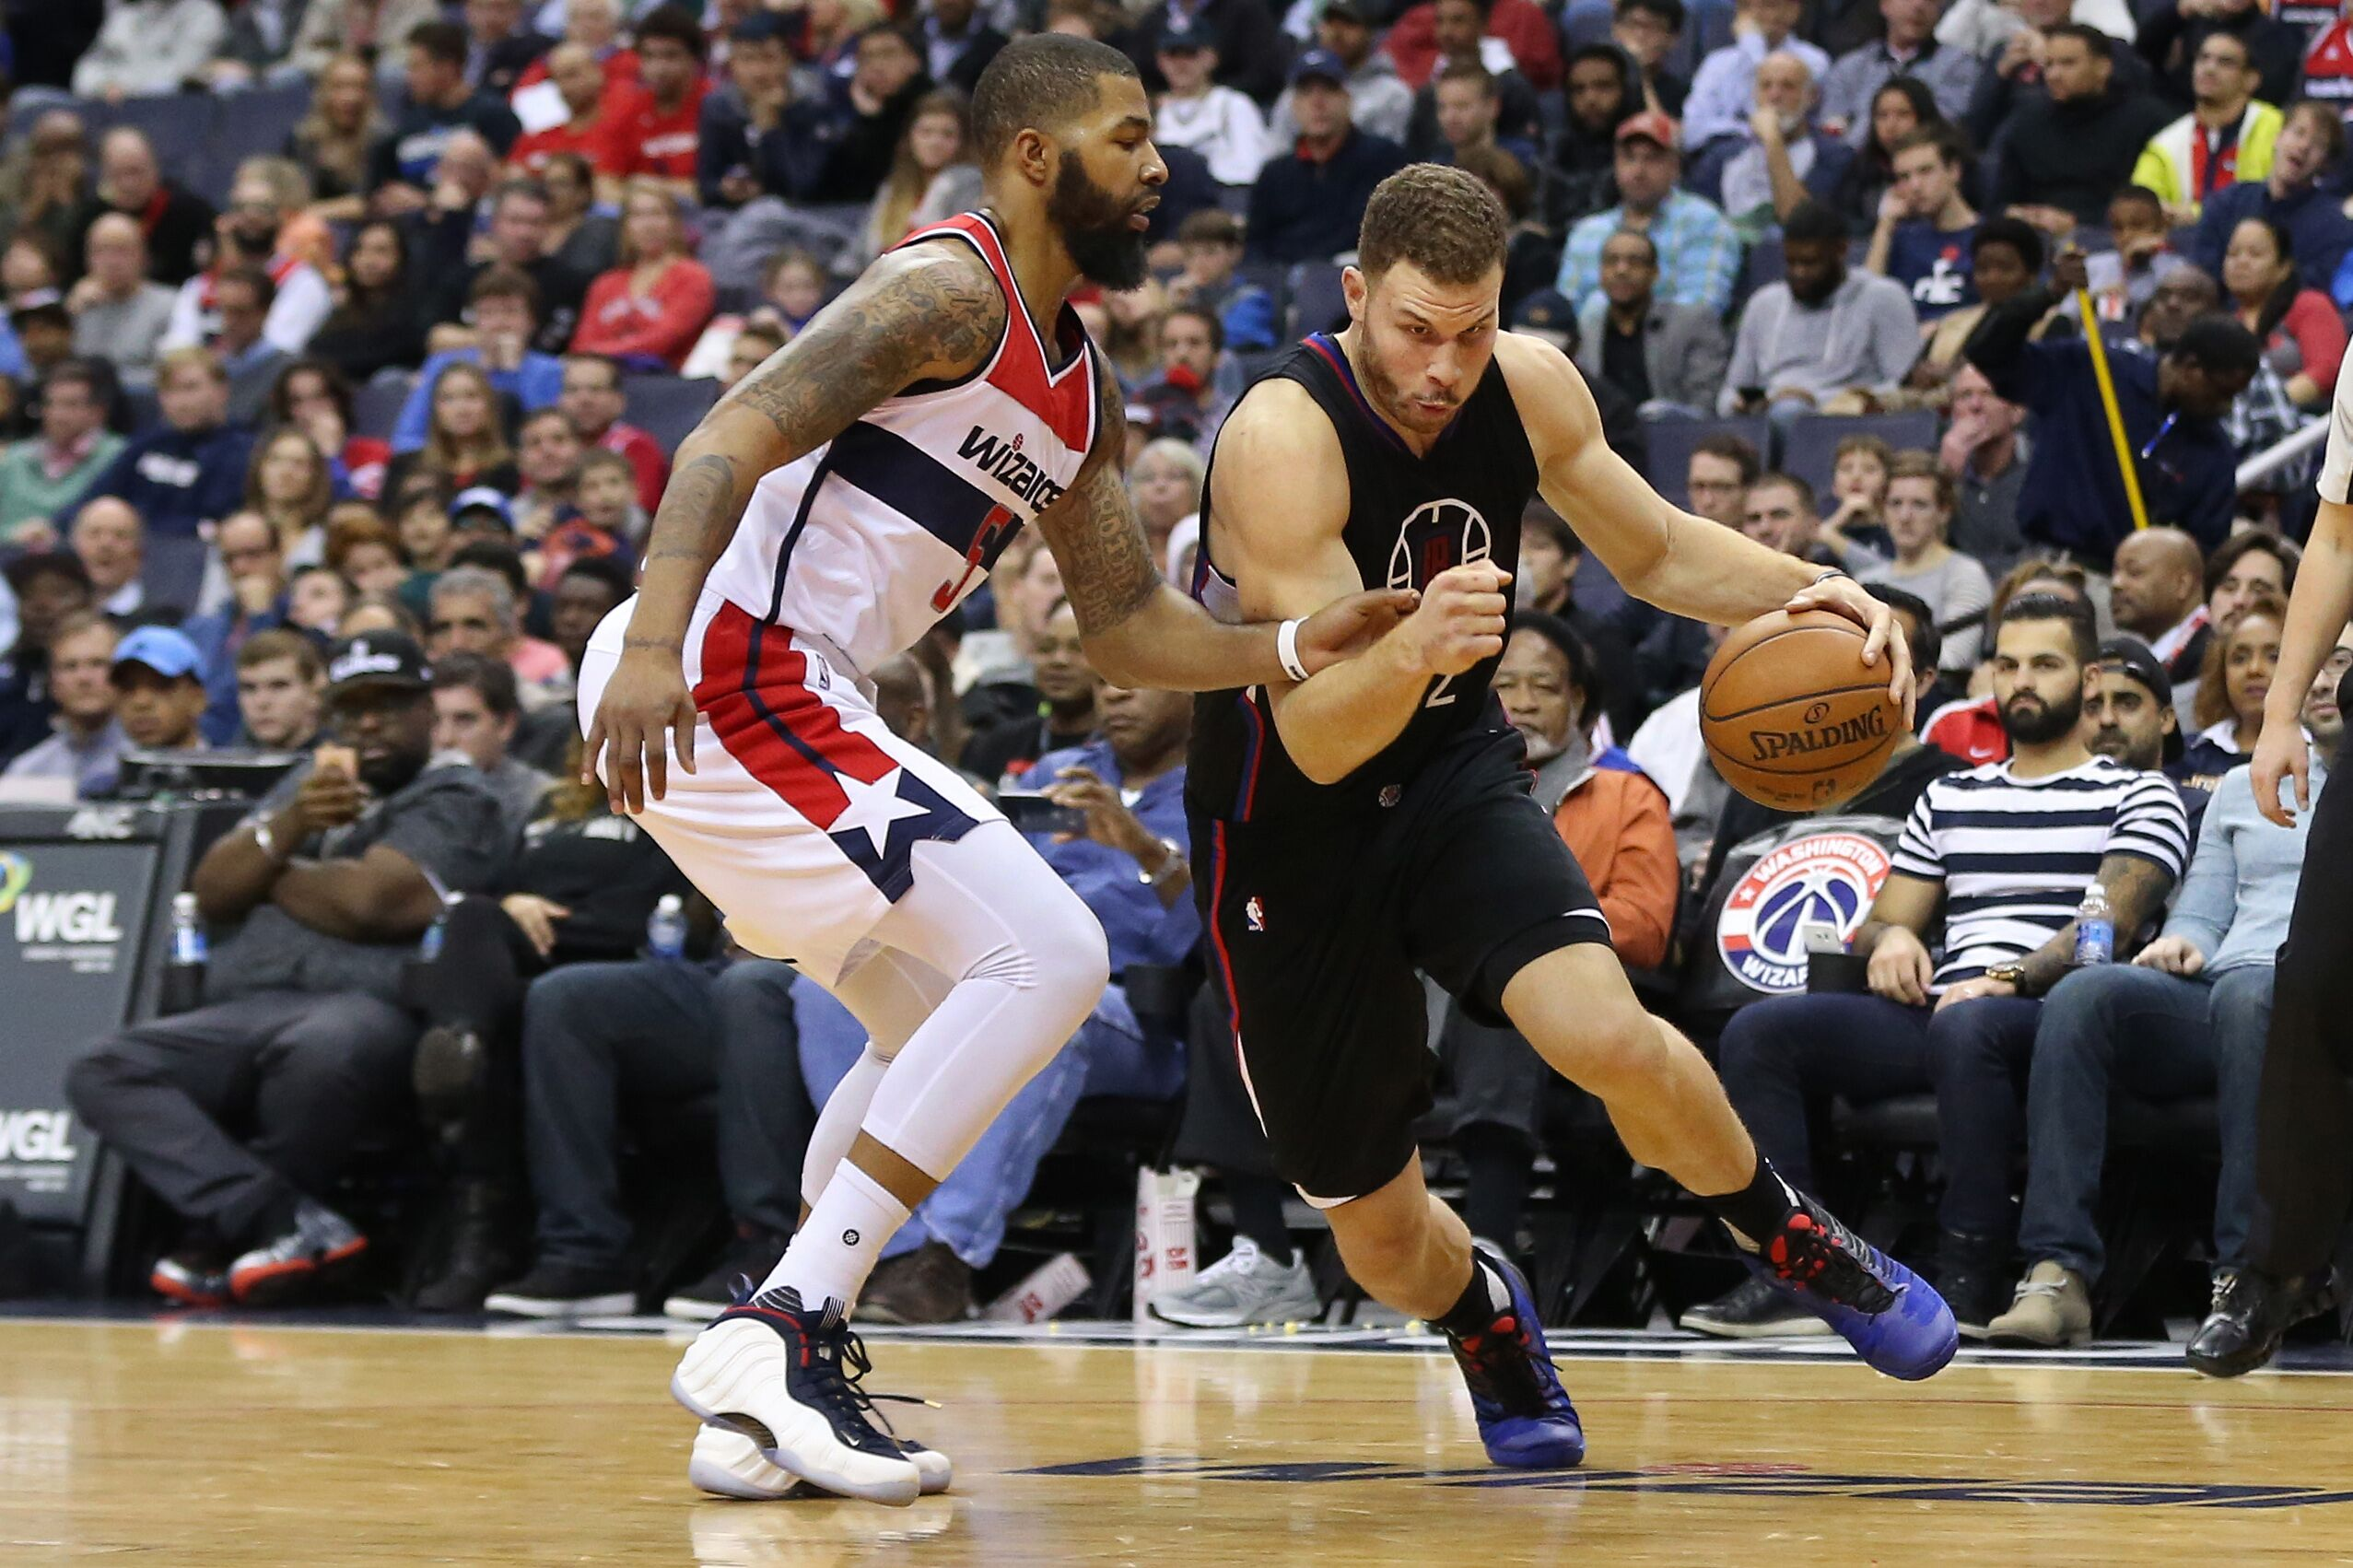 wizards vs clippers - photo #28